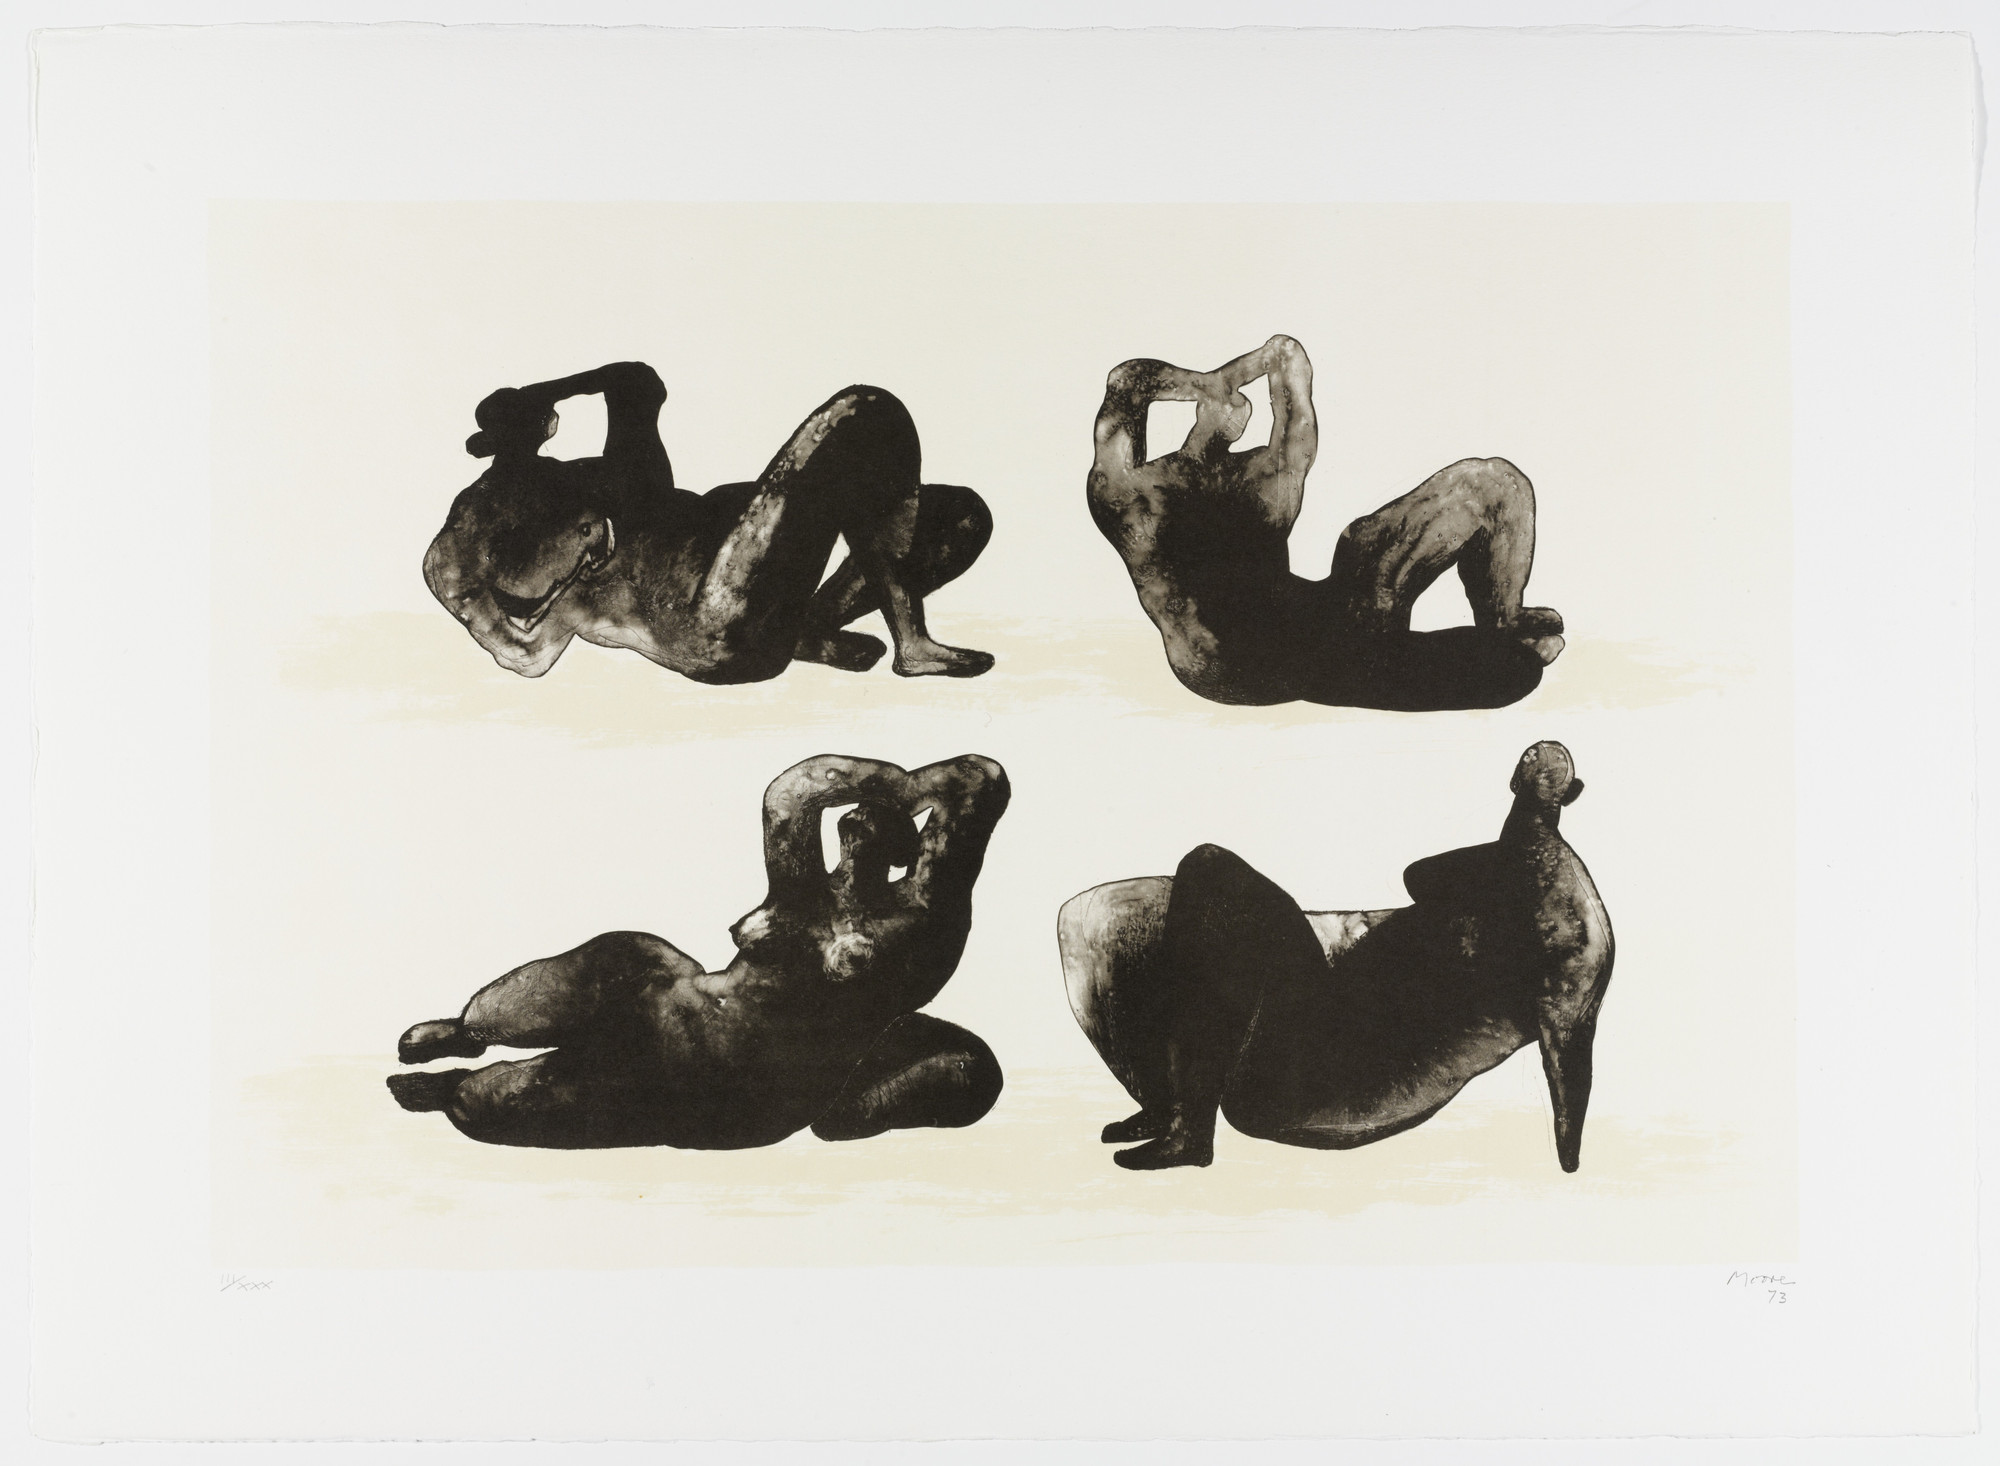 Henry Moore. Four Reclining Figures from Homage to Picasso (Hommage à Picasso). 1973